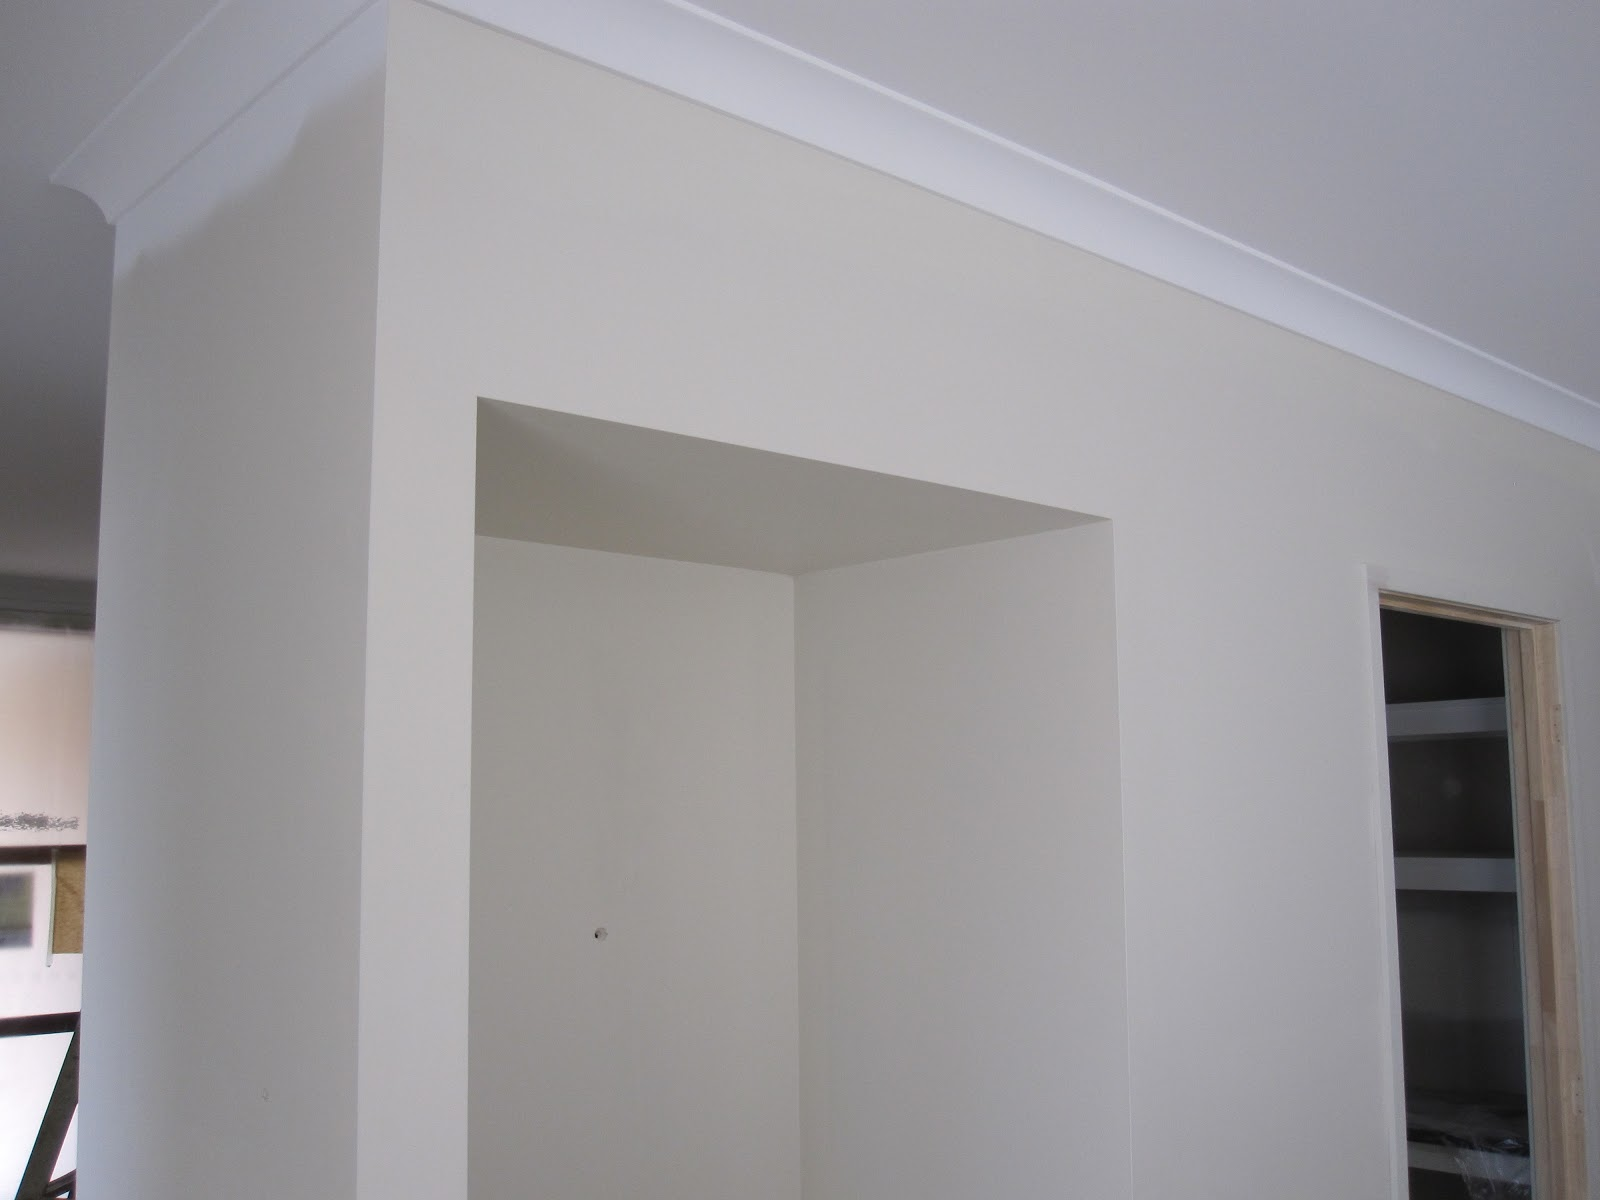 Dulux White Ceiling Paint Warm And Cool Whites Explained